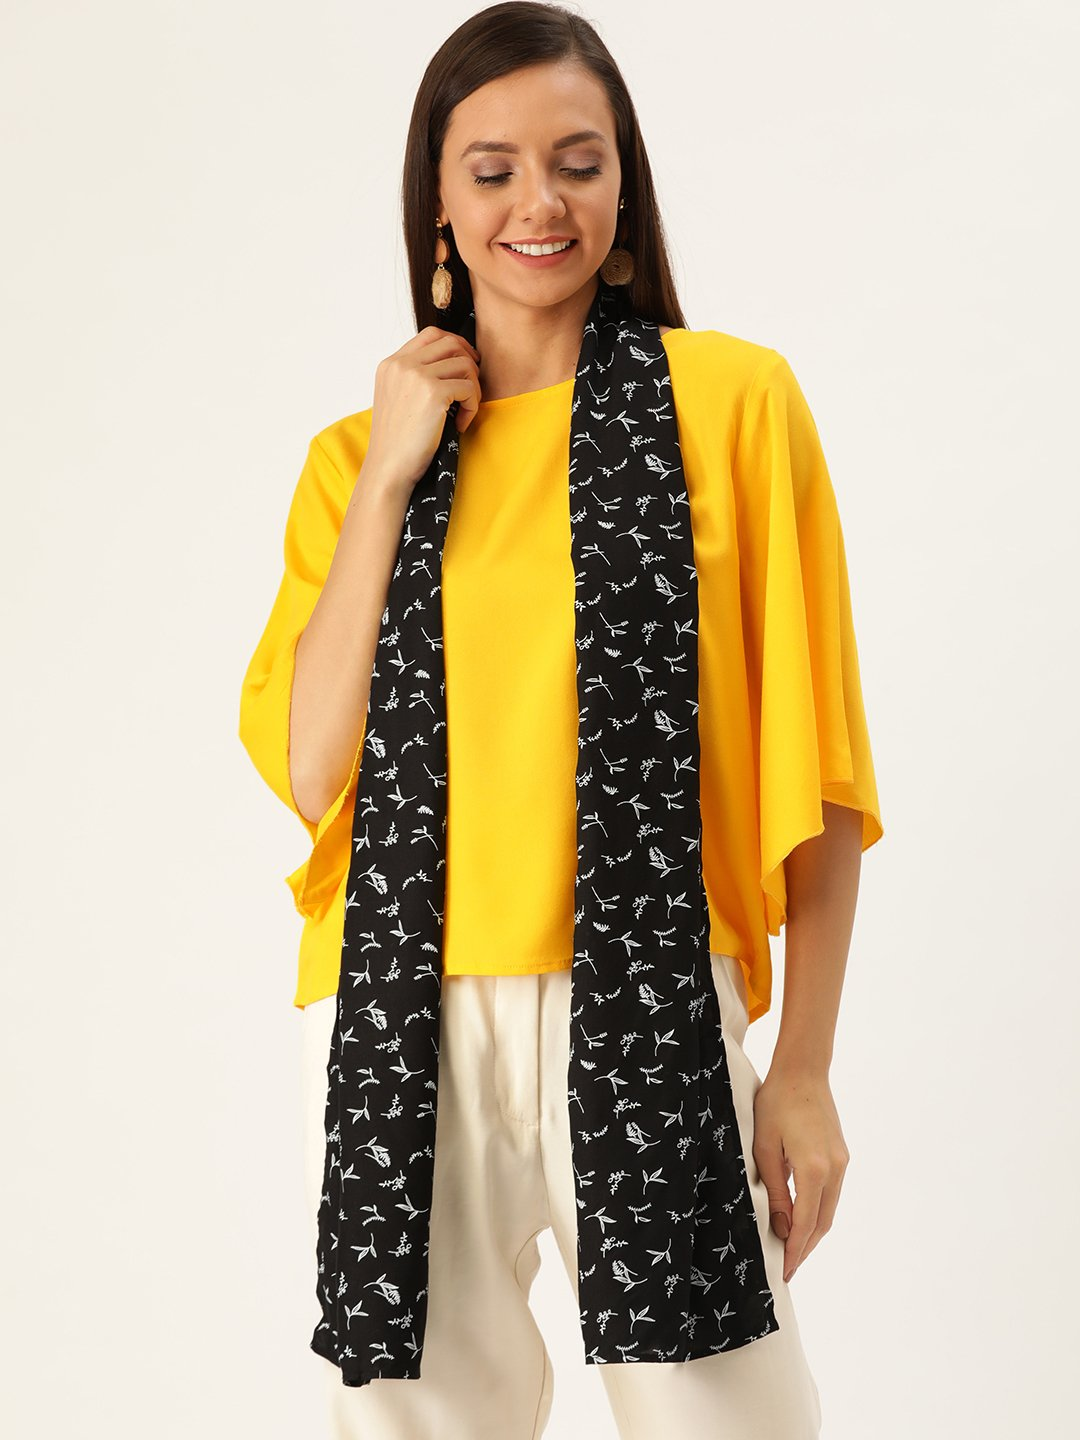 Yellow Top With Black Stole